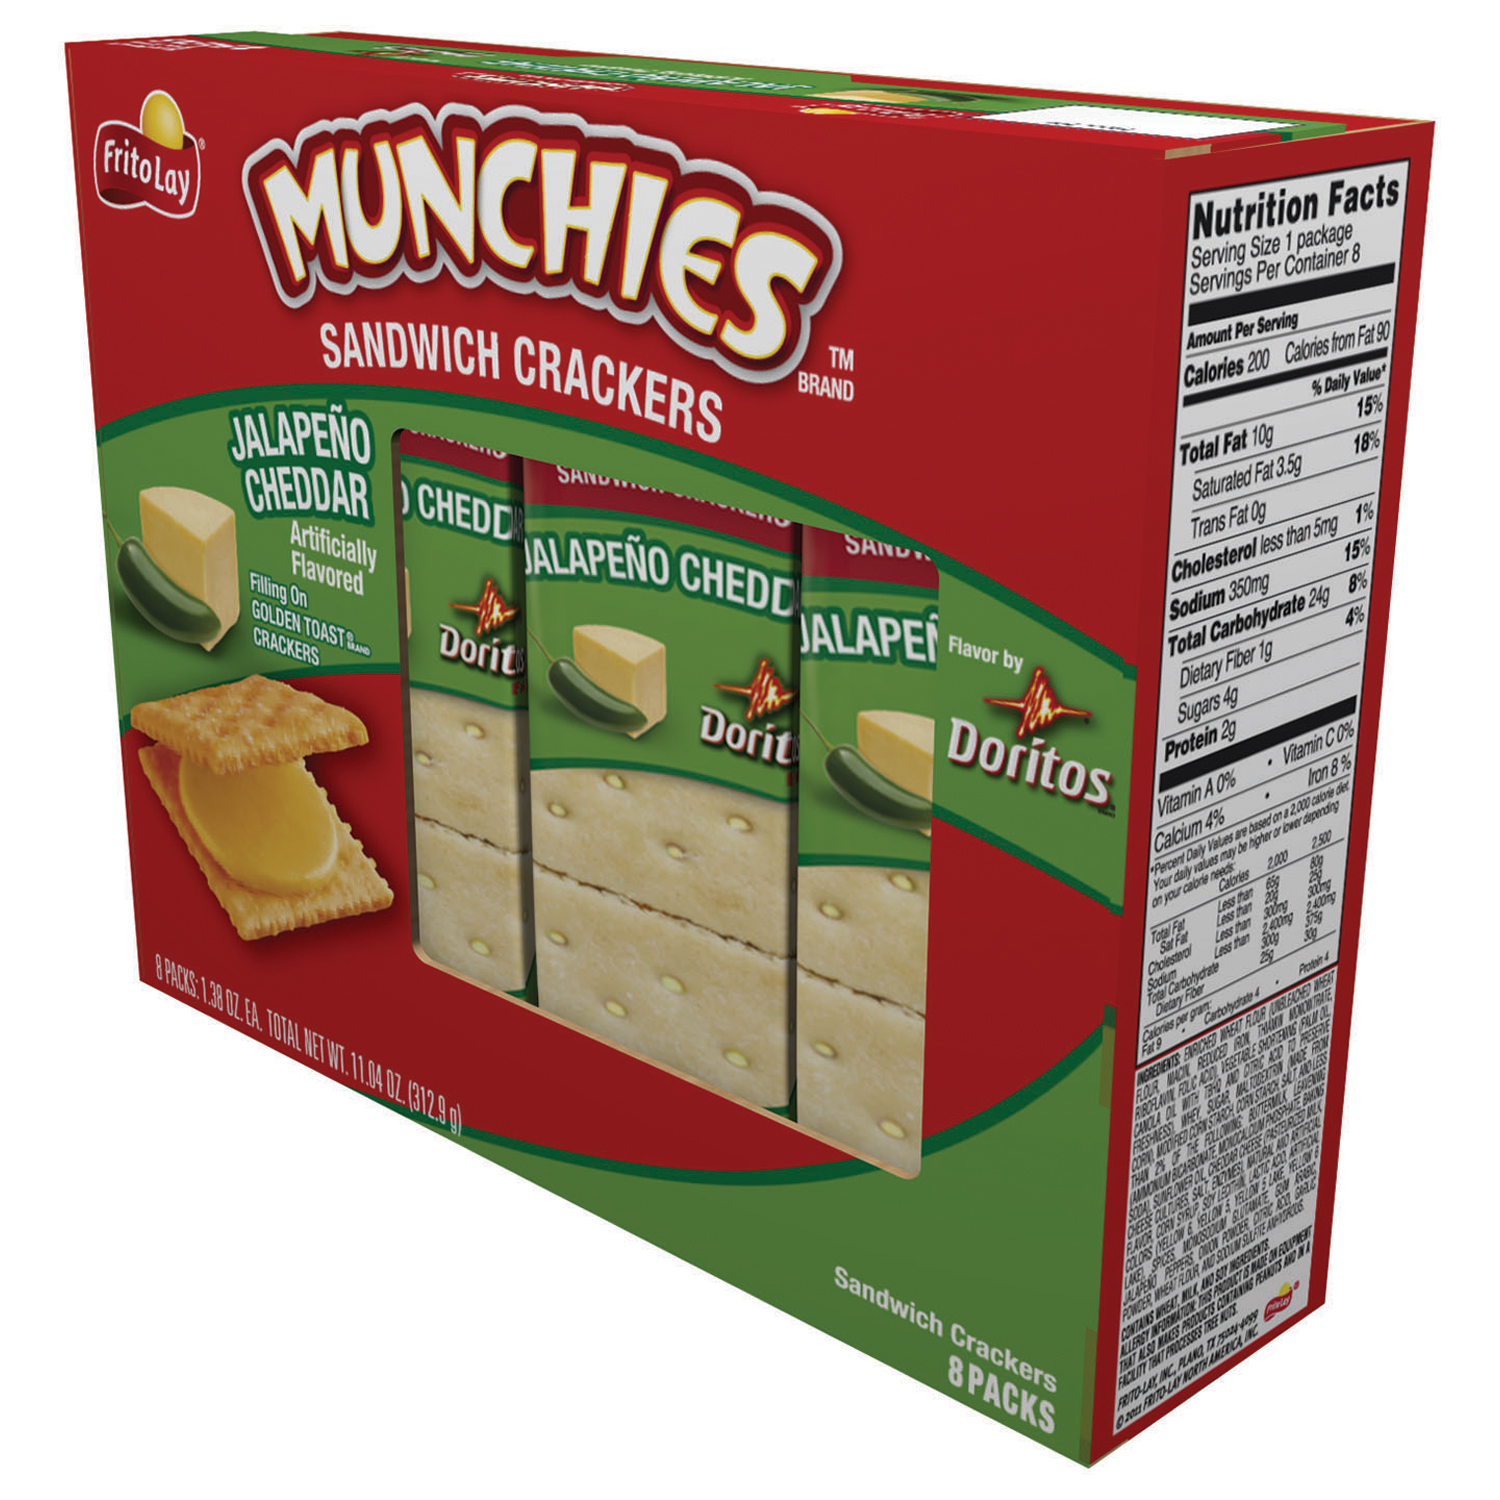 Munchies Jalapeno Cheddar Sandwich Crackers, 8 Packs